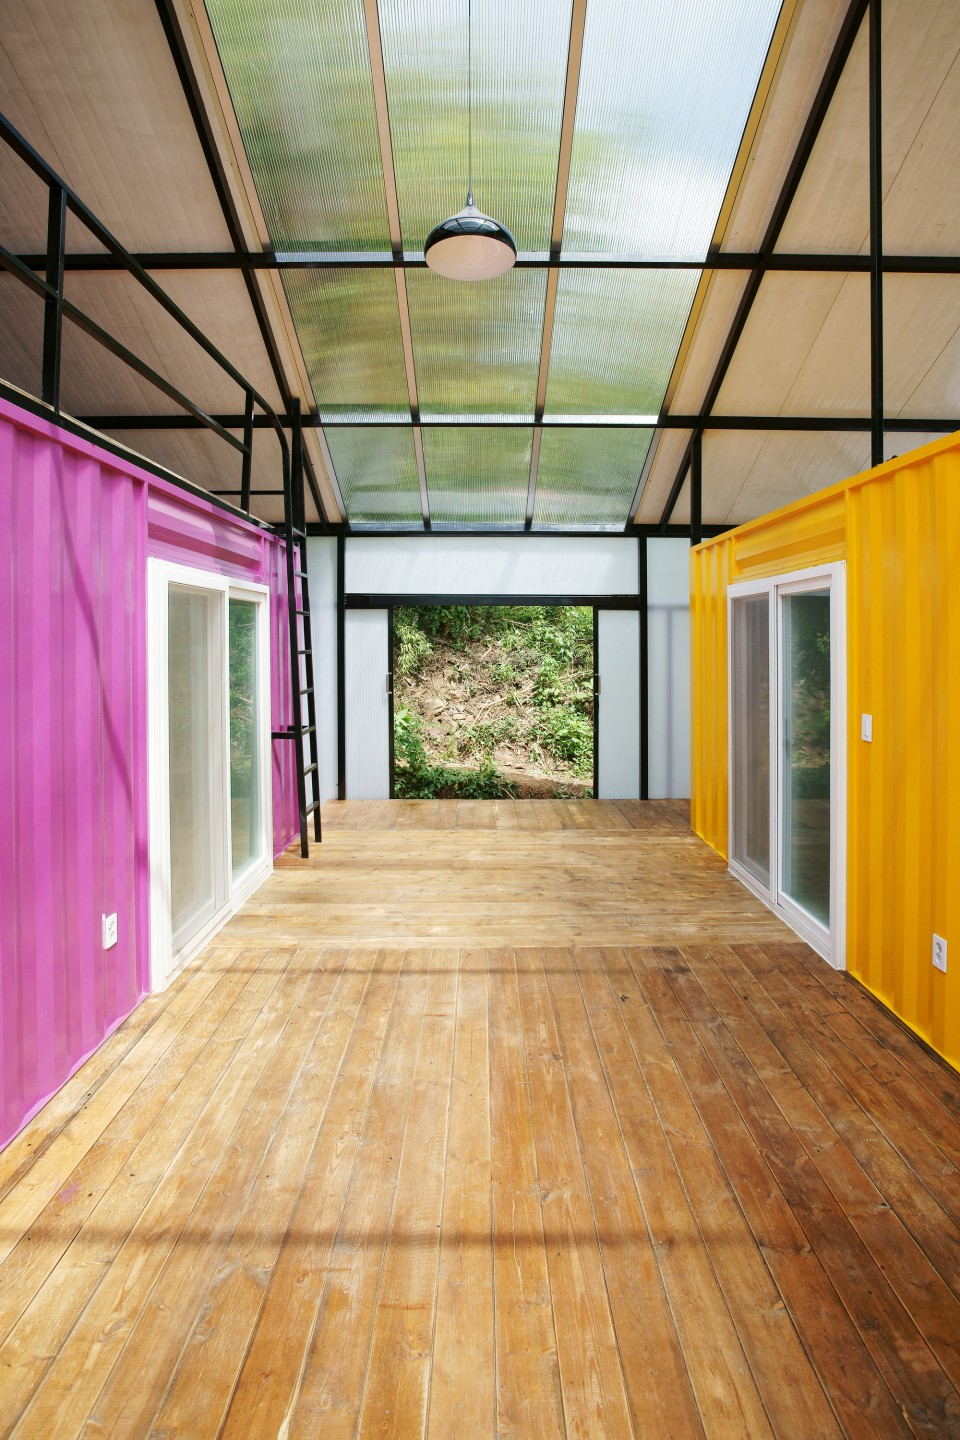 low cost house-in-a-house made of 2 shipping containers | urbanist